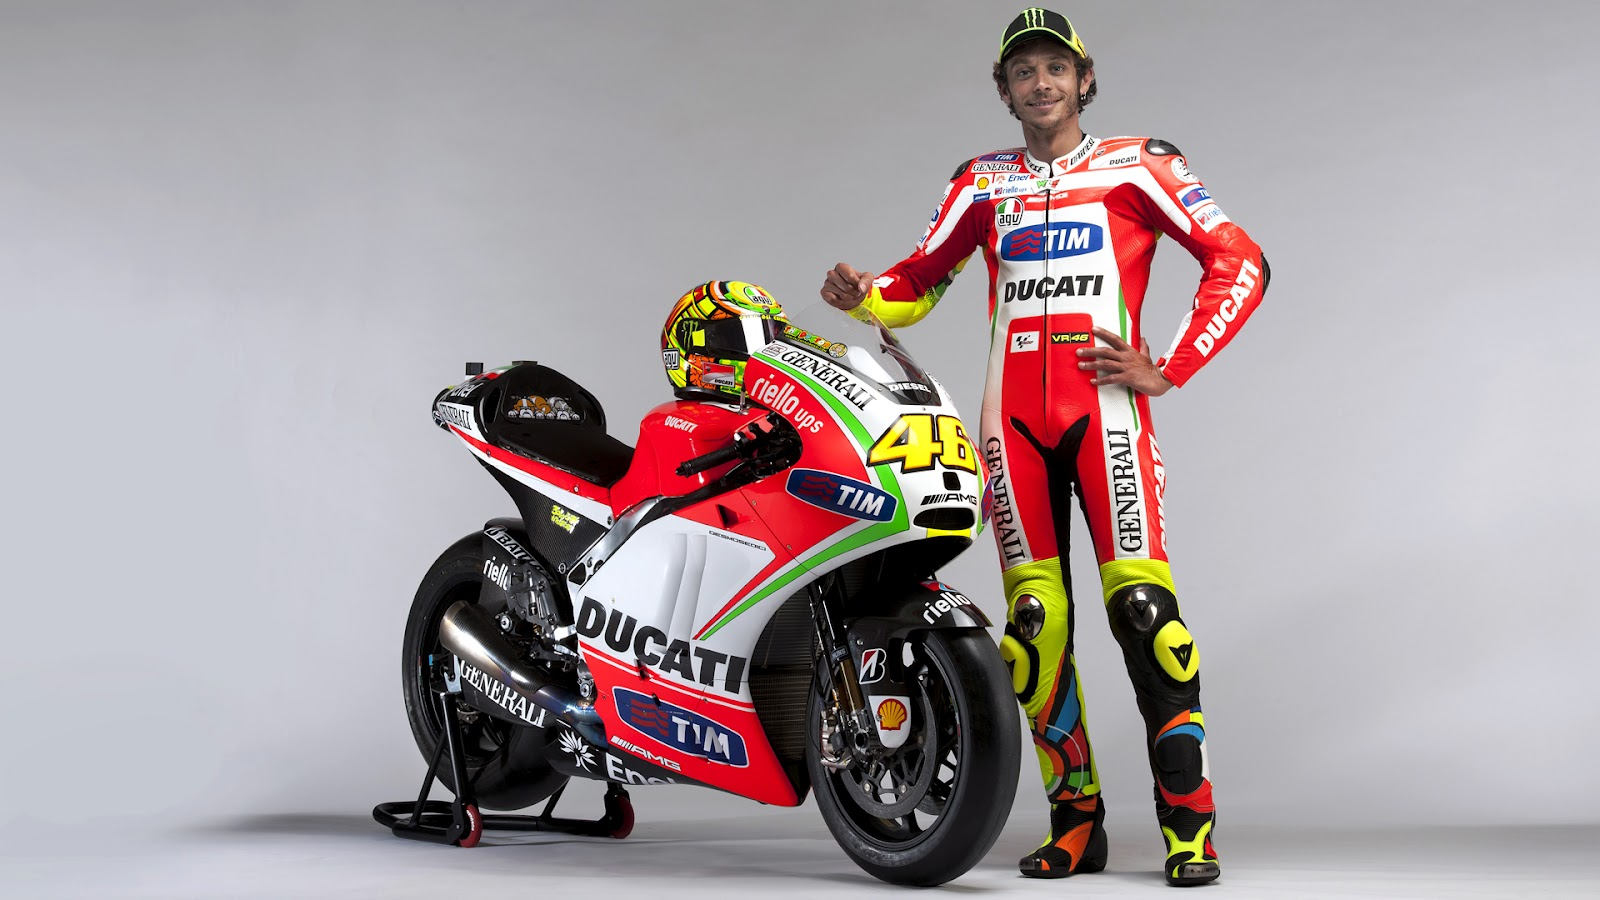 valentino rossi biker Valentino Rossi wallpapers in HD